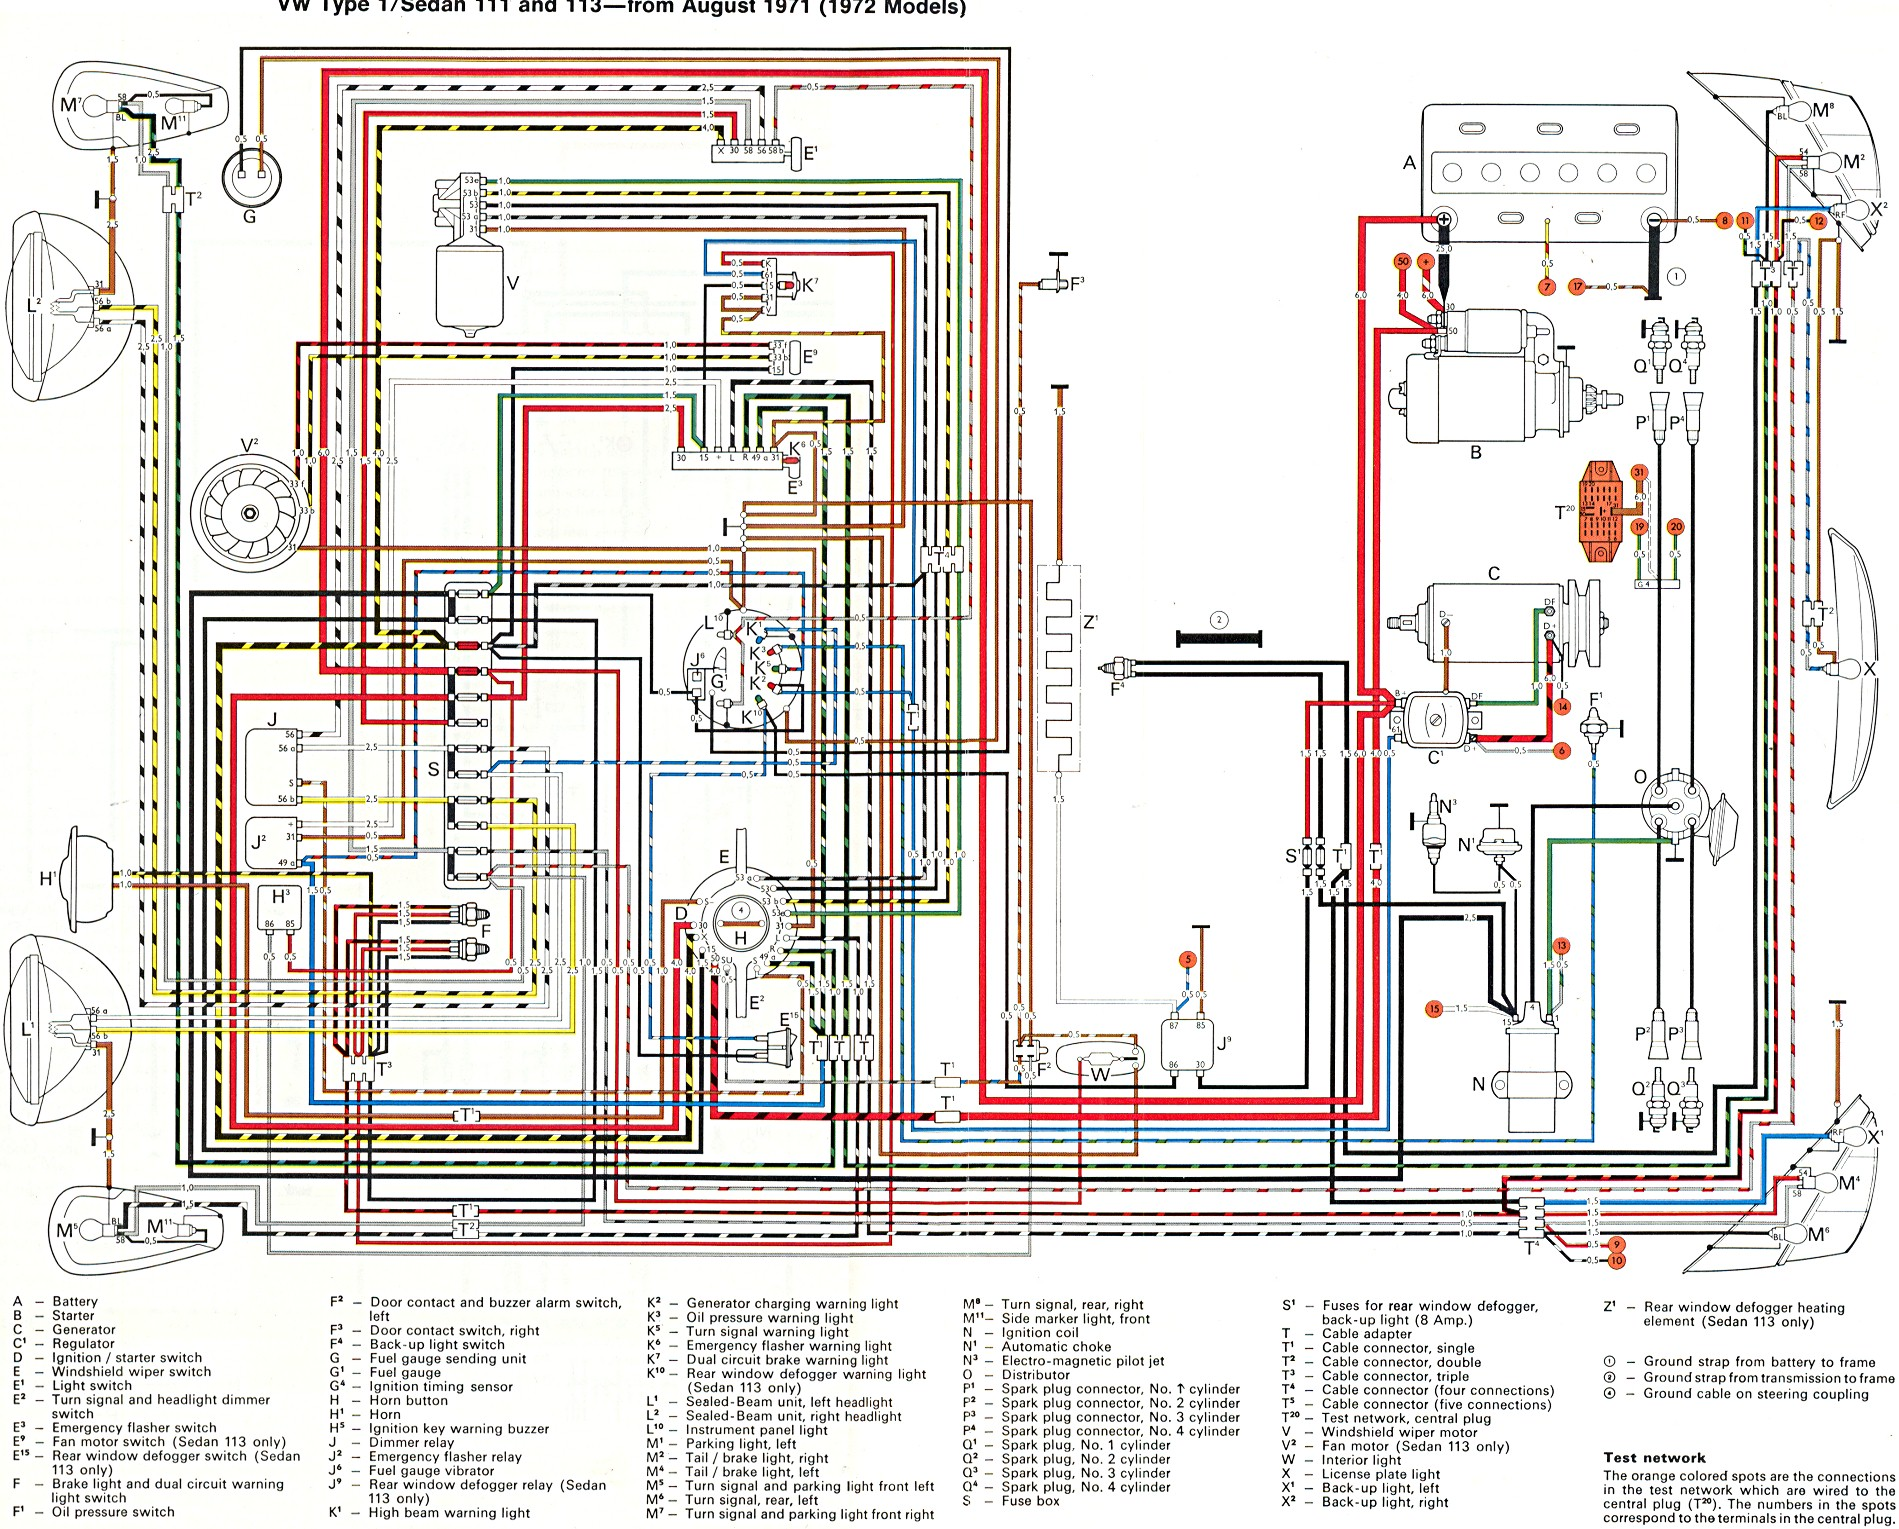 1973 vw beetle wiring diagram 1973 wiring diagrams online